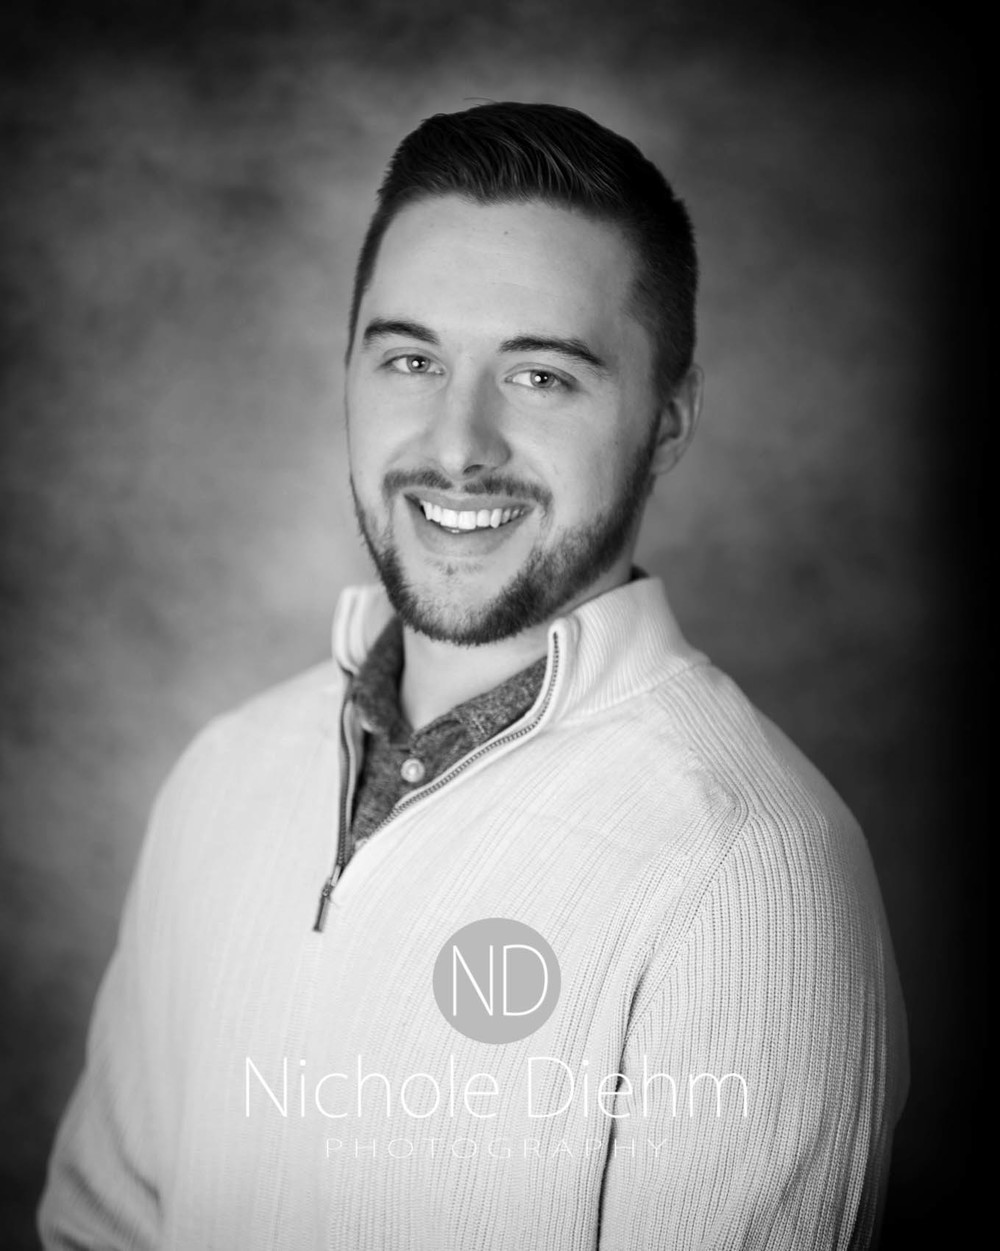 Nichole Diehm Photography Headshots Zach Kowalik New York Life Agent-4.jpg